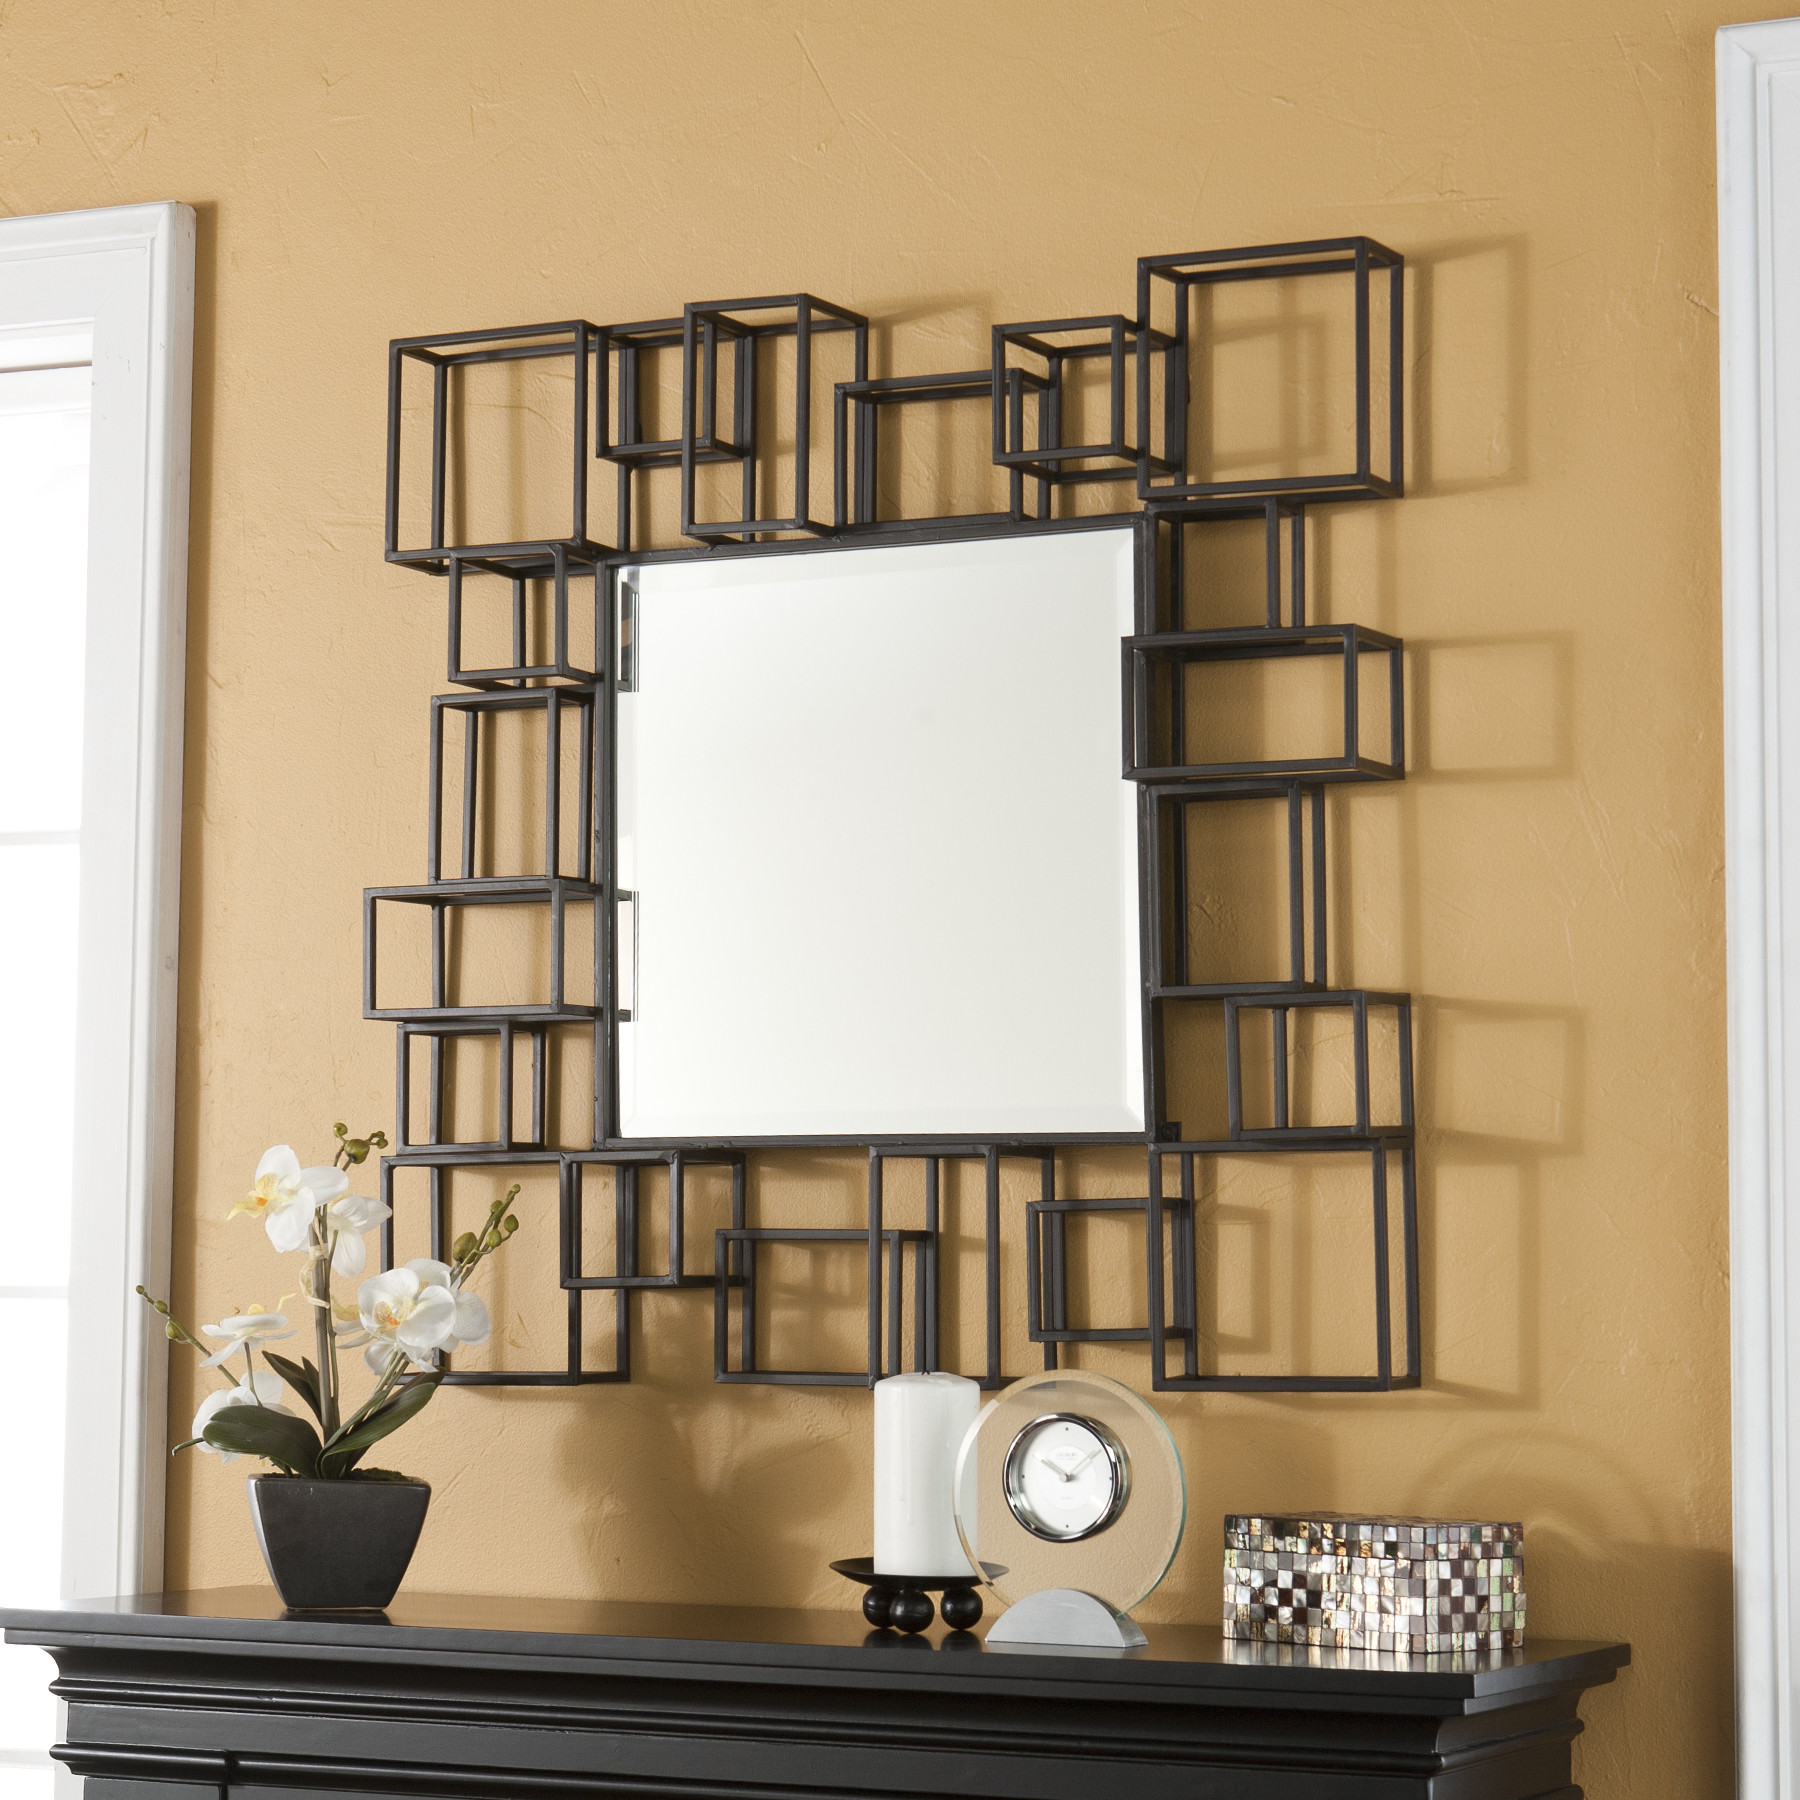 Unique Wall Mirrors Decor 23 Fancy Decorative Mirror Designs